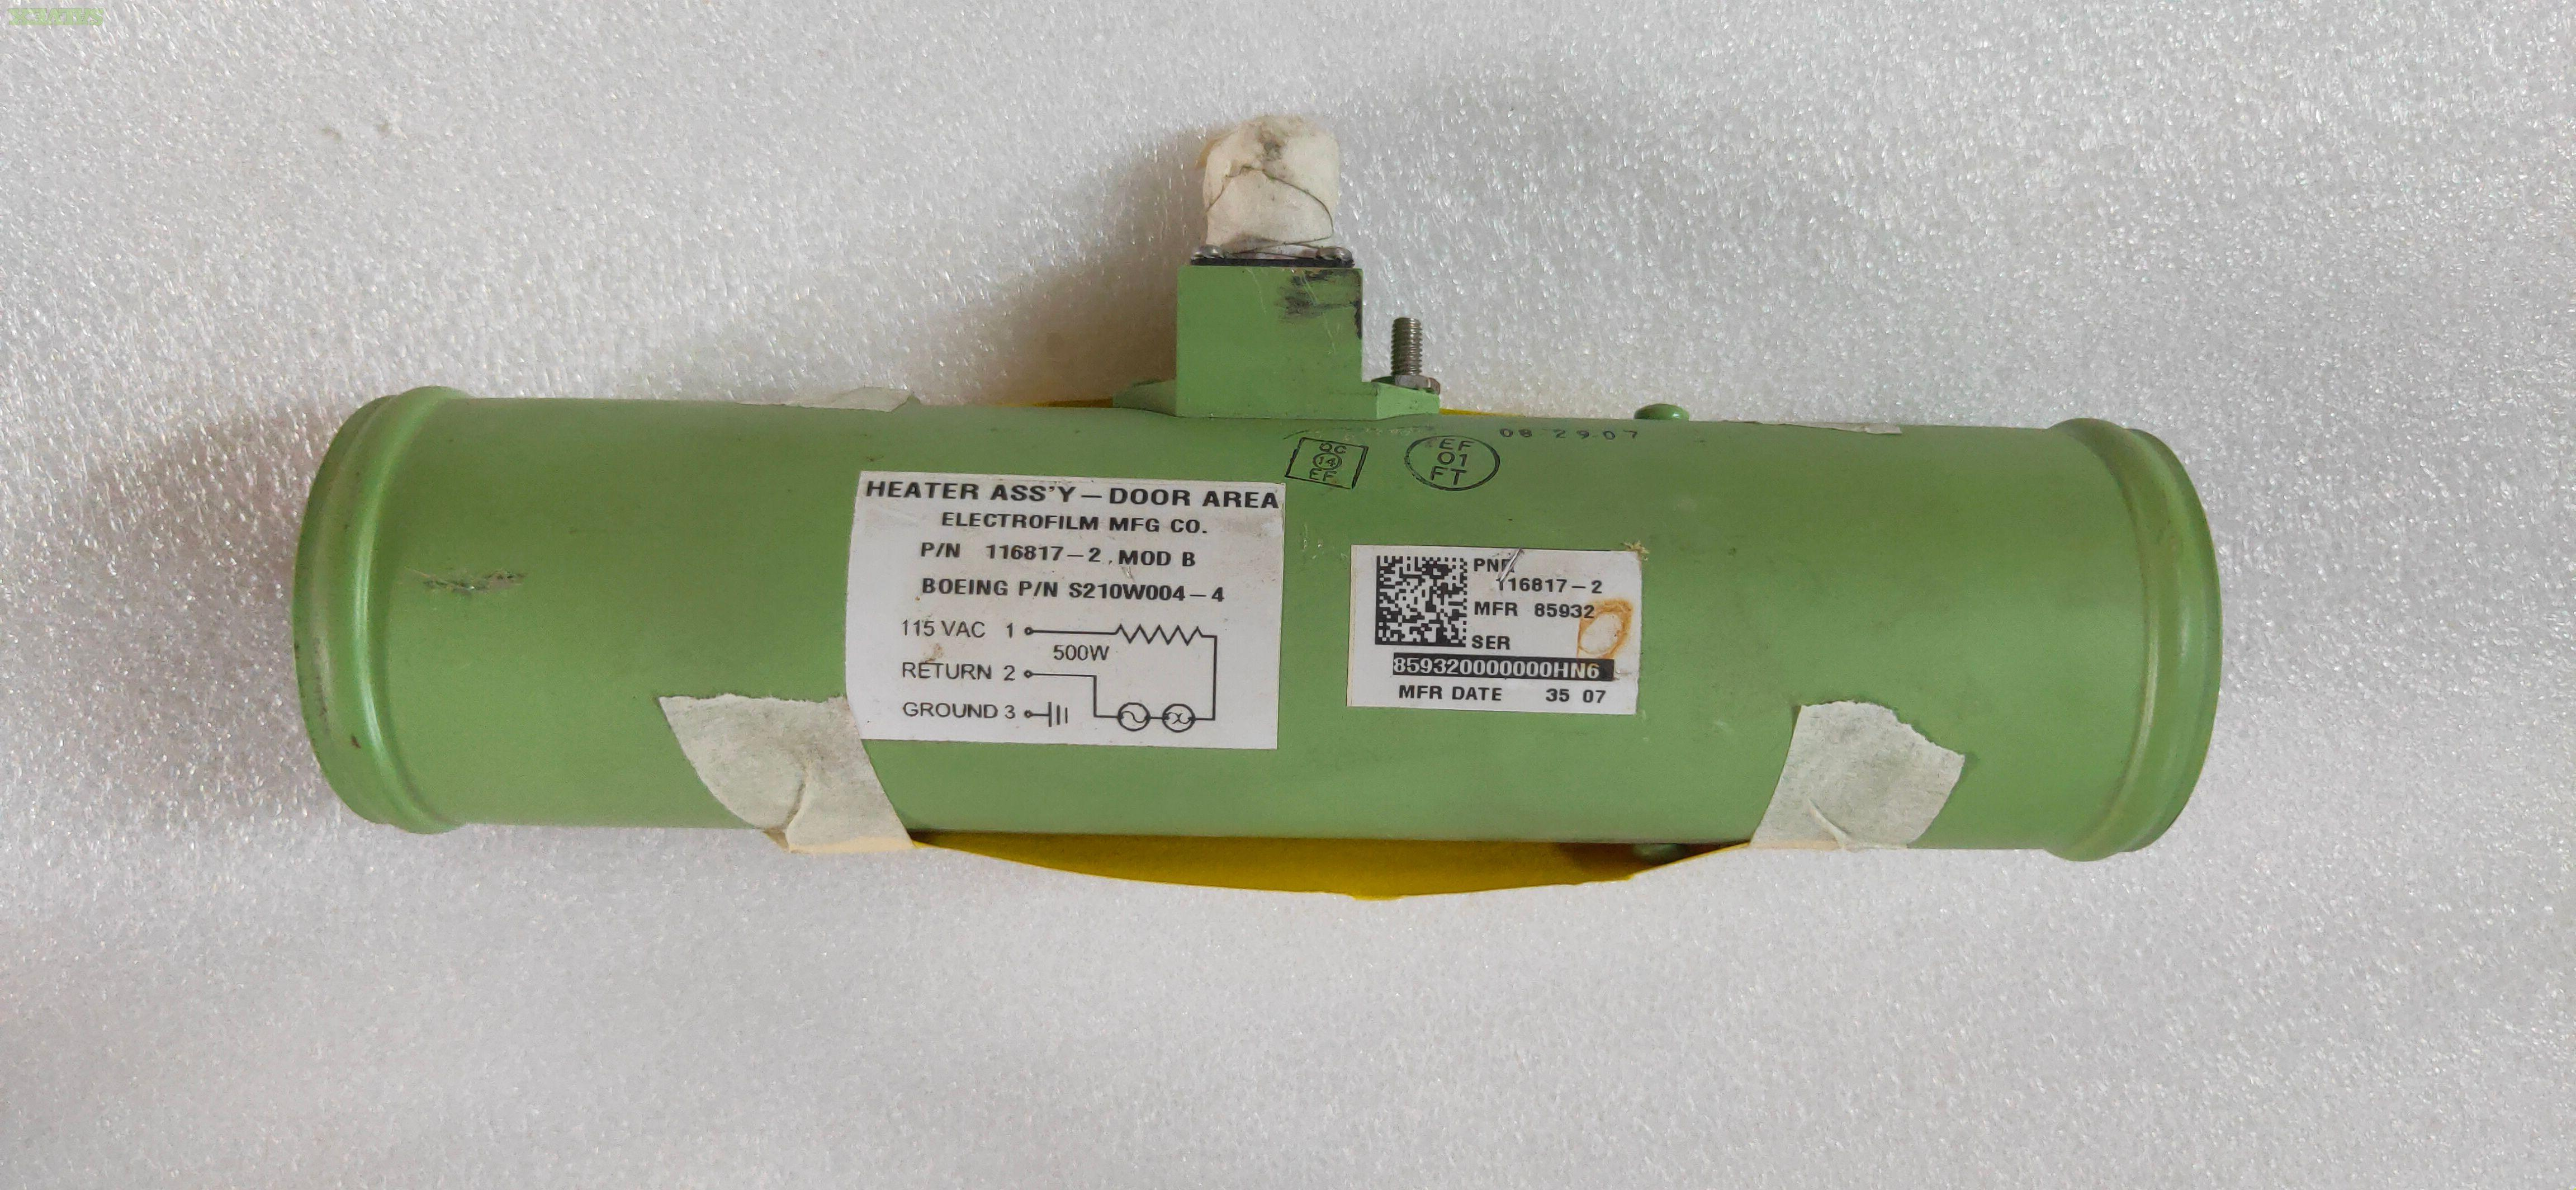 B777 Inventory Items in AR Condition, Duct Assy, Clamps etc. (843 Items)